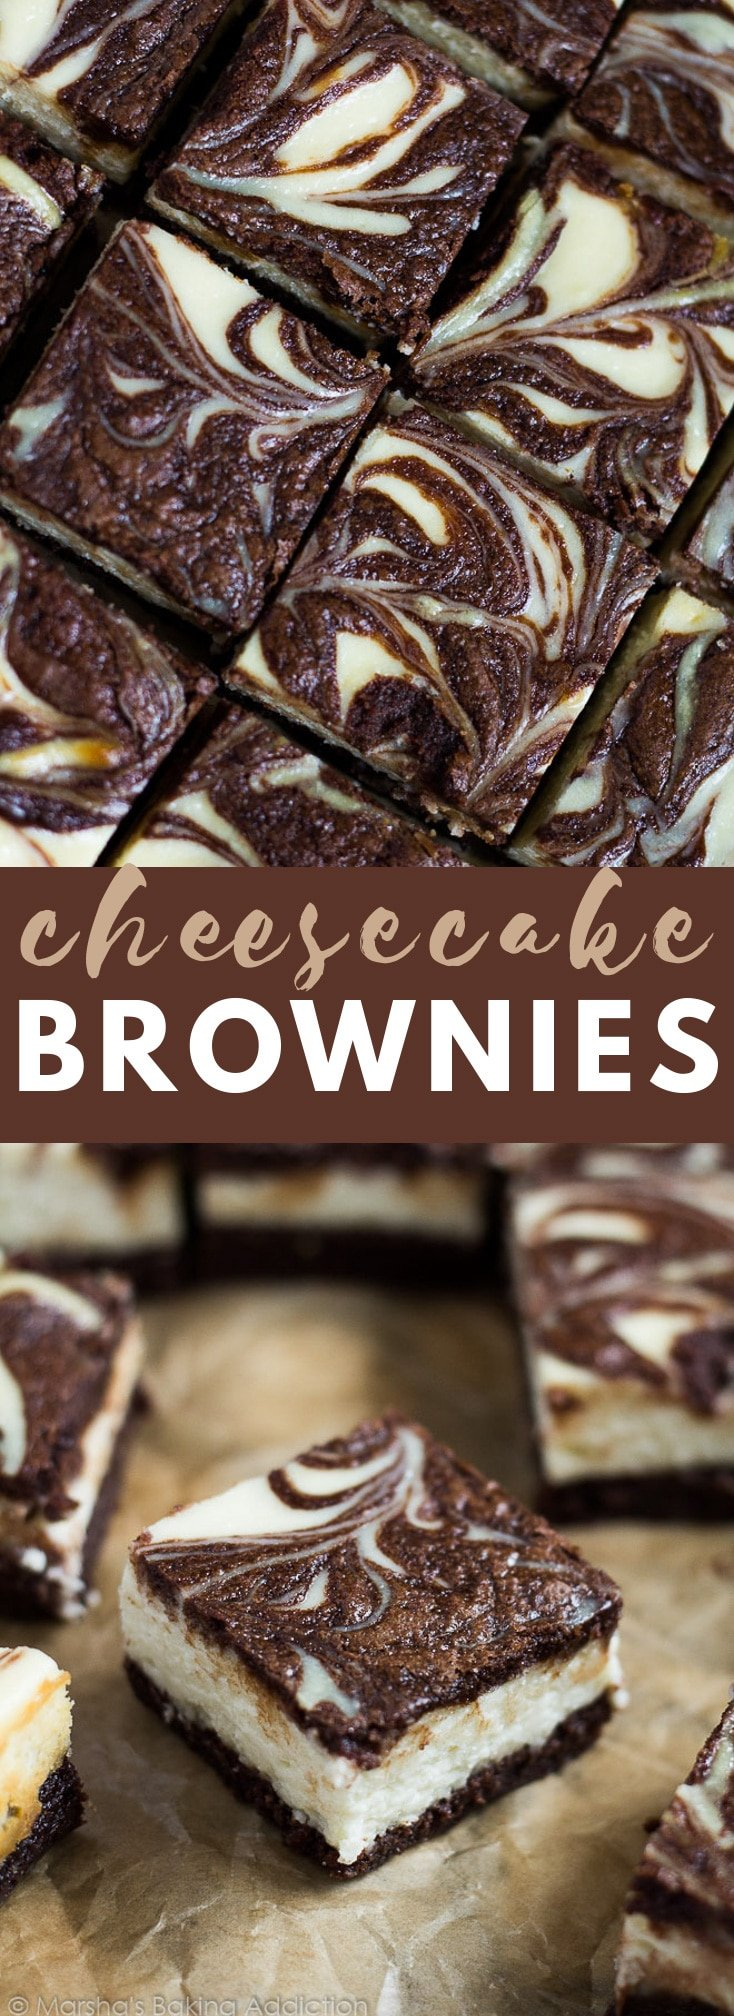 Cheesecake Brownies - Scrumptiously rich and fudgy brownies topped with a creamy cheesecake layer with a brownie swirl. A perfect cheesecake brownie combination! #cheesecake #brownies #recipe